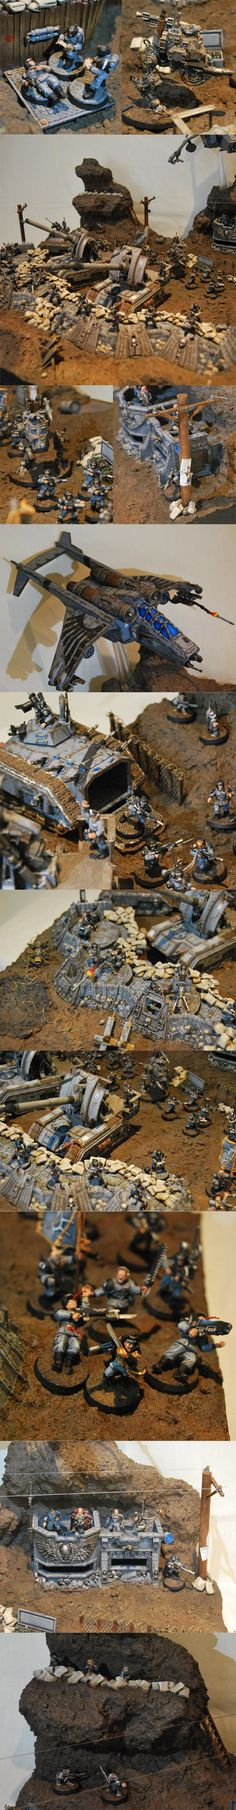 Armies On Parade 2013 details